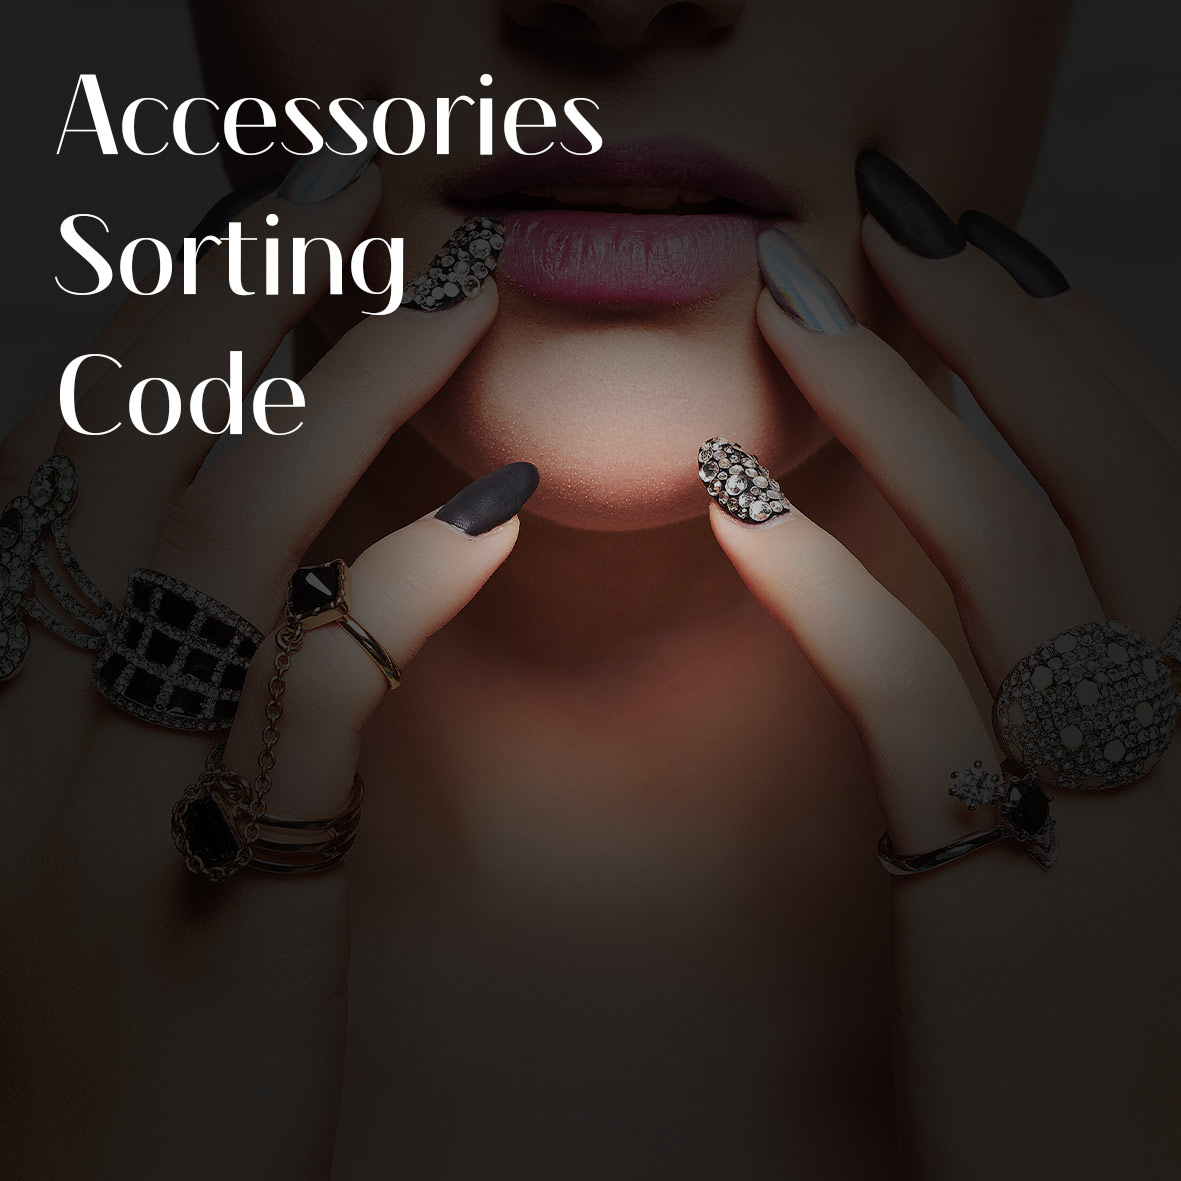 Accessories Sorting Code